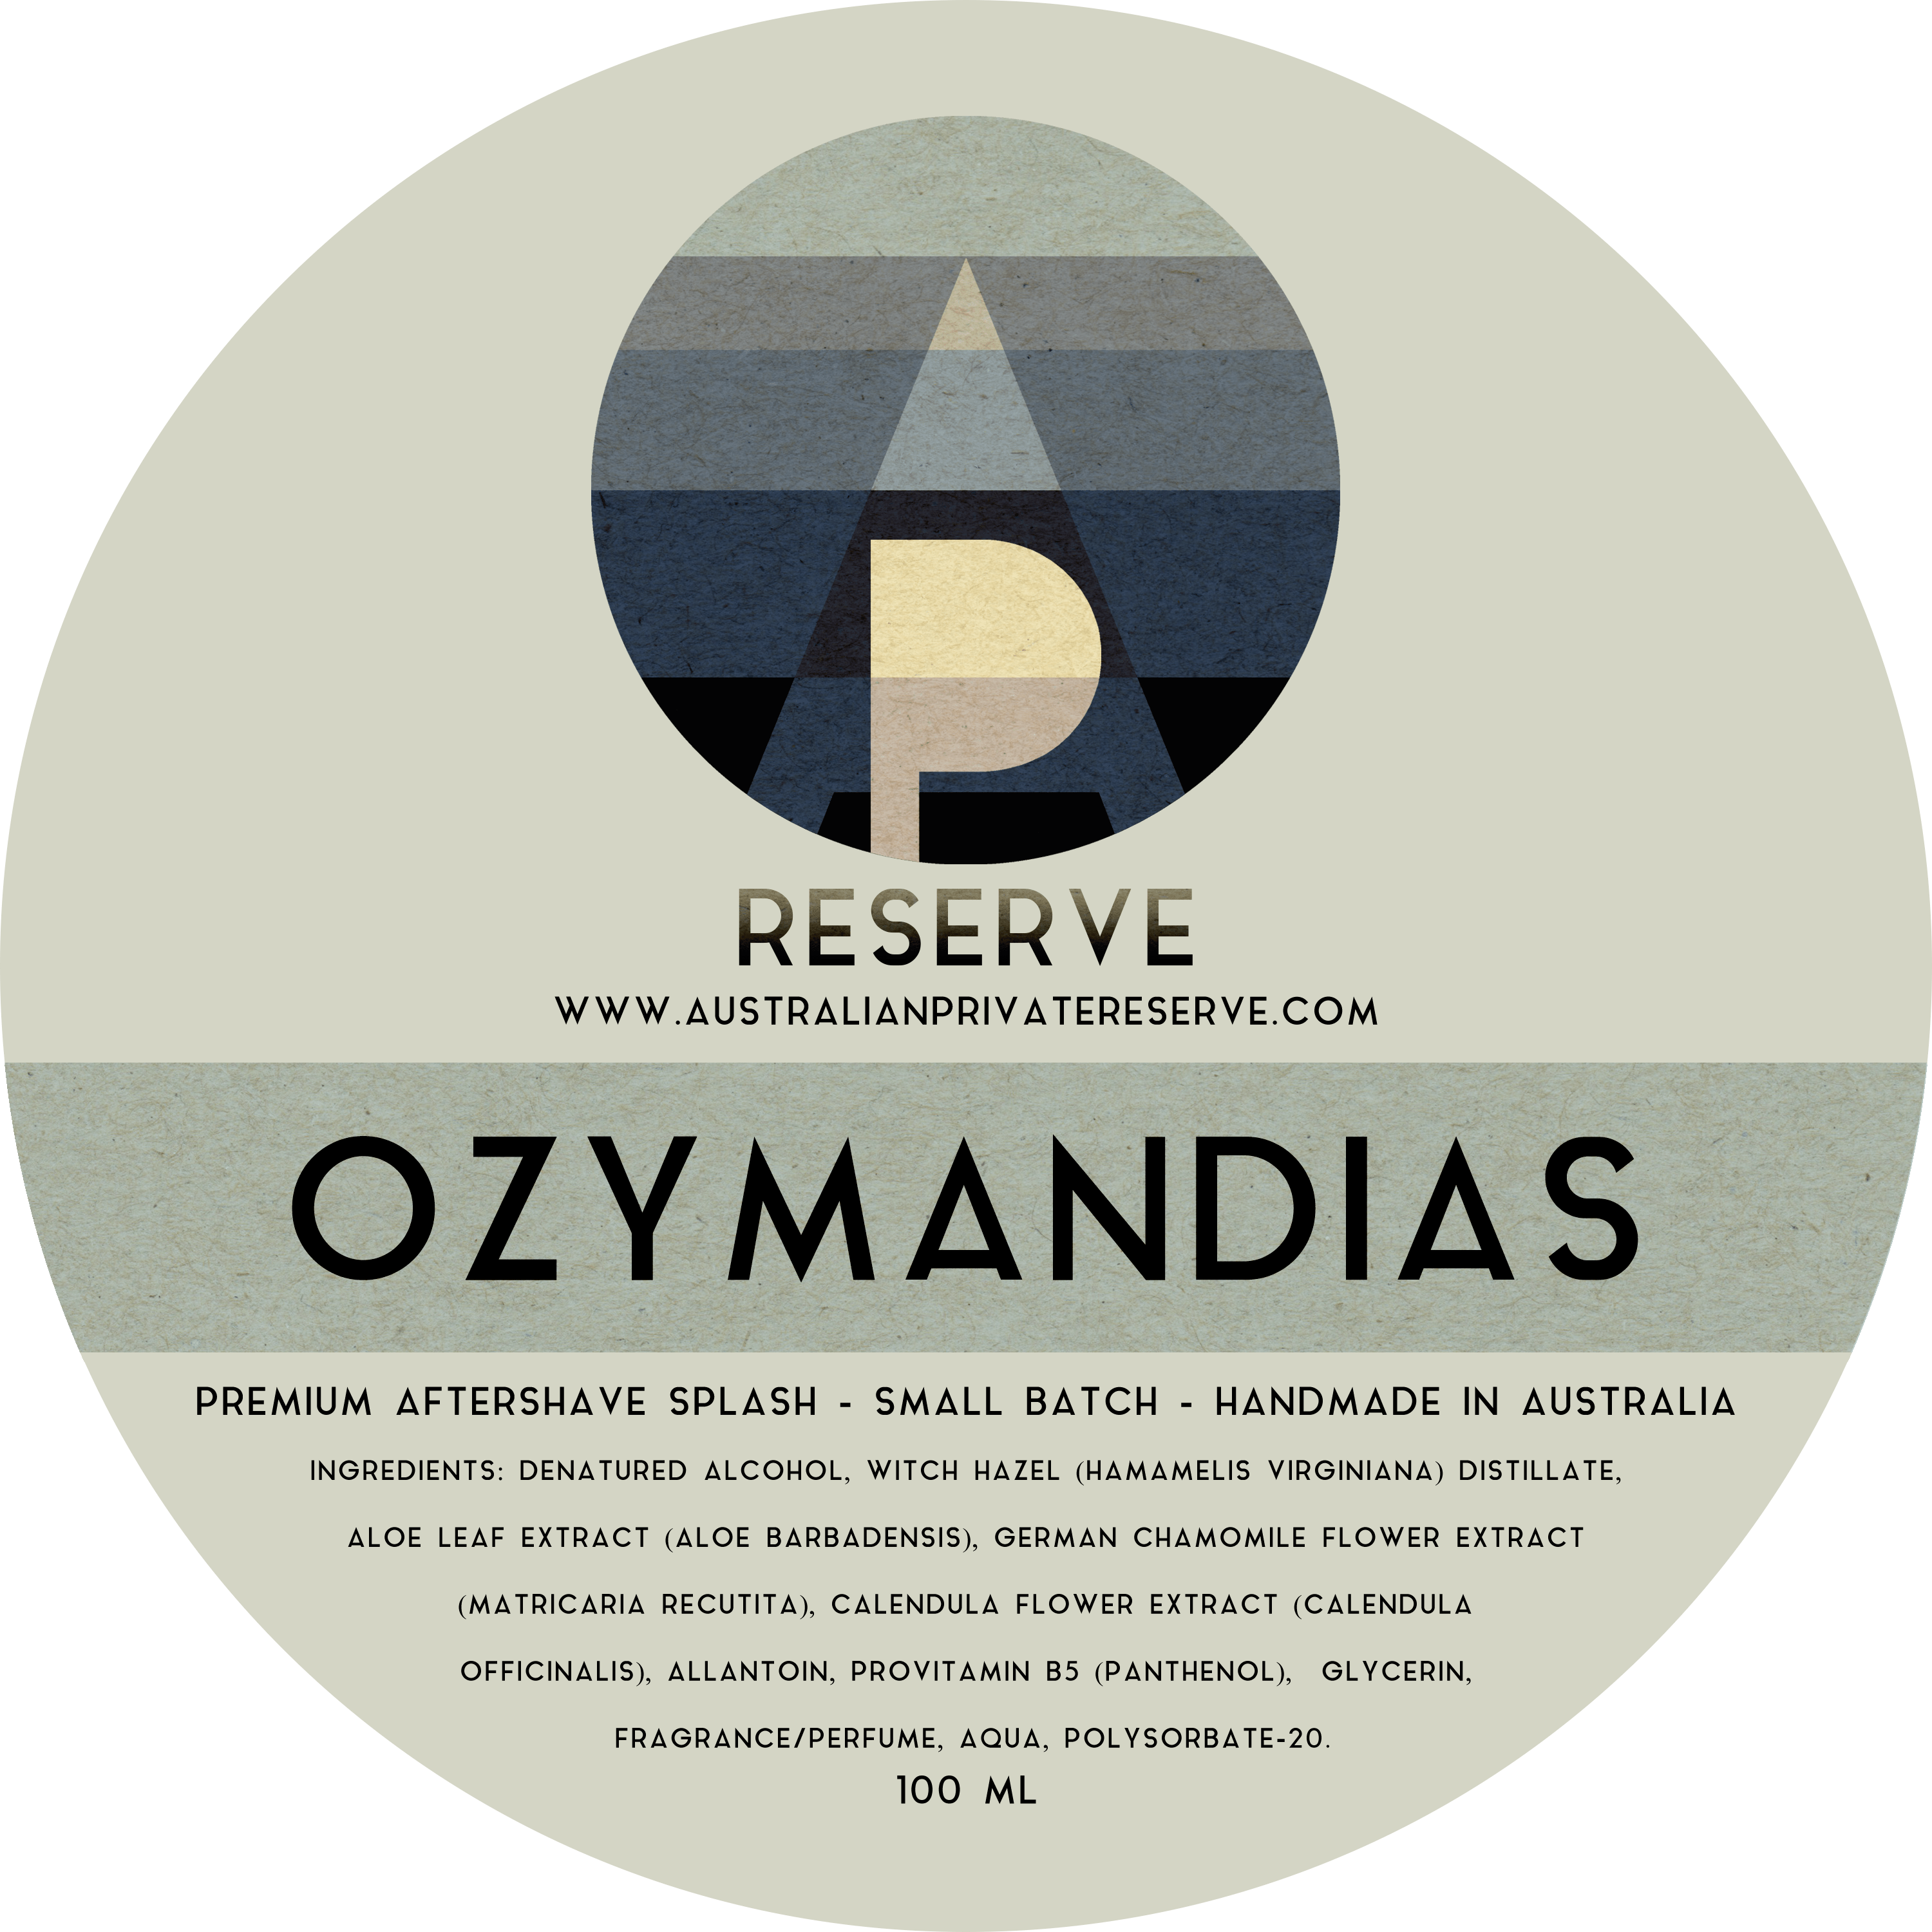 Australian Private Reserve - Ozymandias - Aftershave image